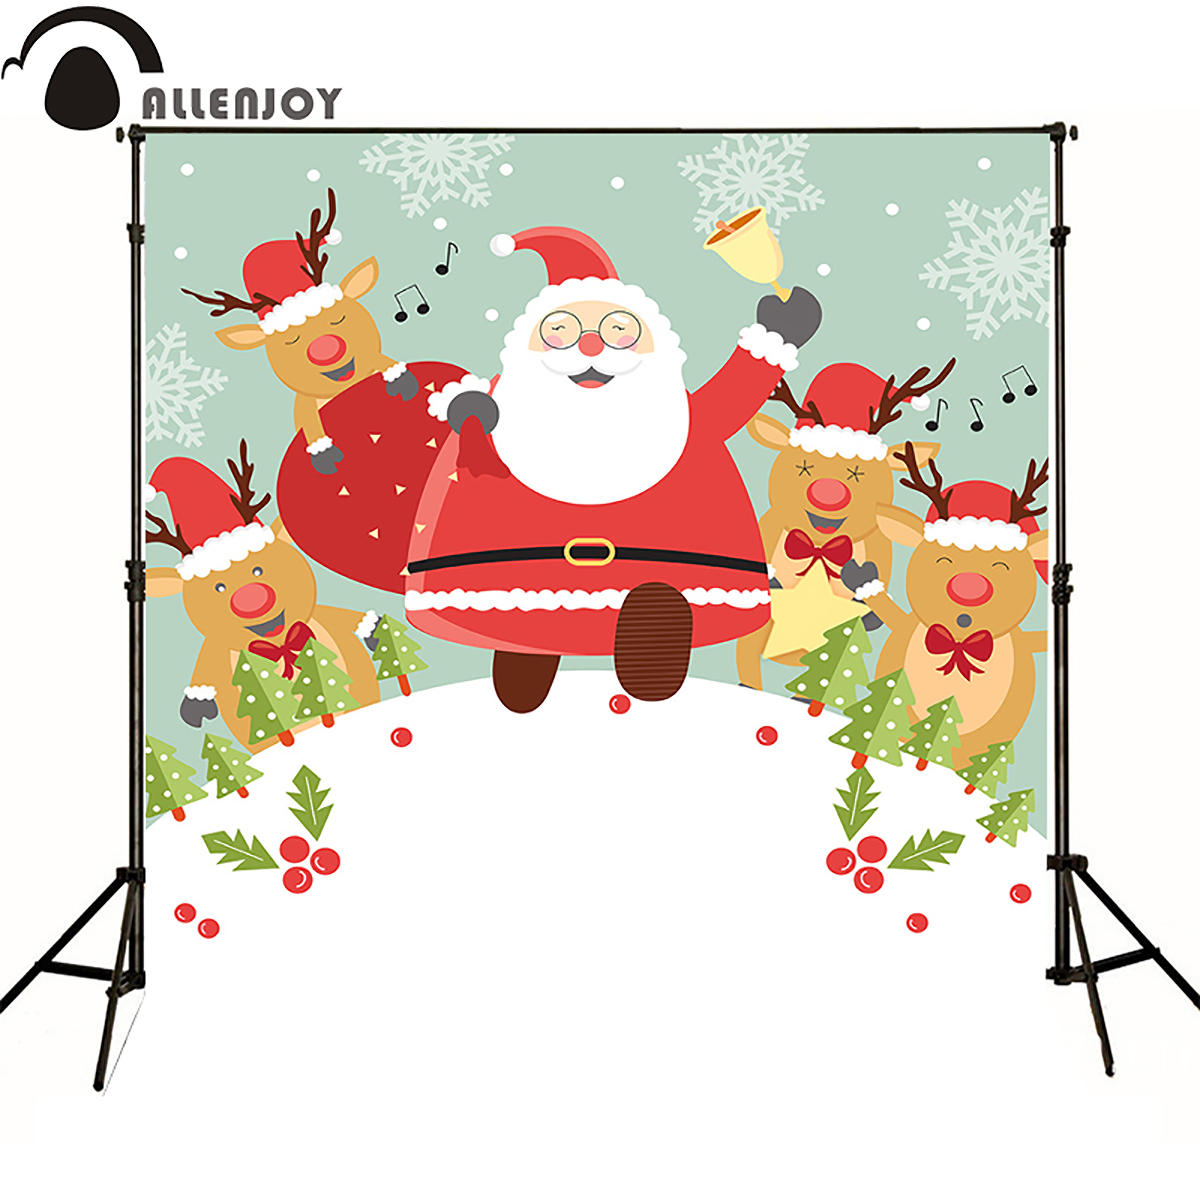 Allen joy christmas photography backdrops santa claus xmas celebration reindeer fun newborn baby shower photocall cartoon inflatable cartoon customized advertising giant christmas inflatable santa claus for christmas outdoor decoration